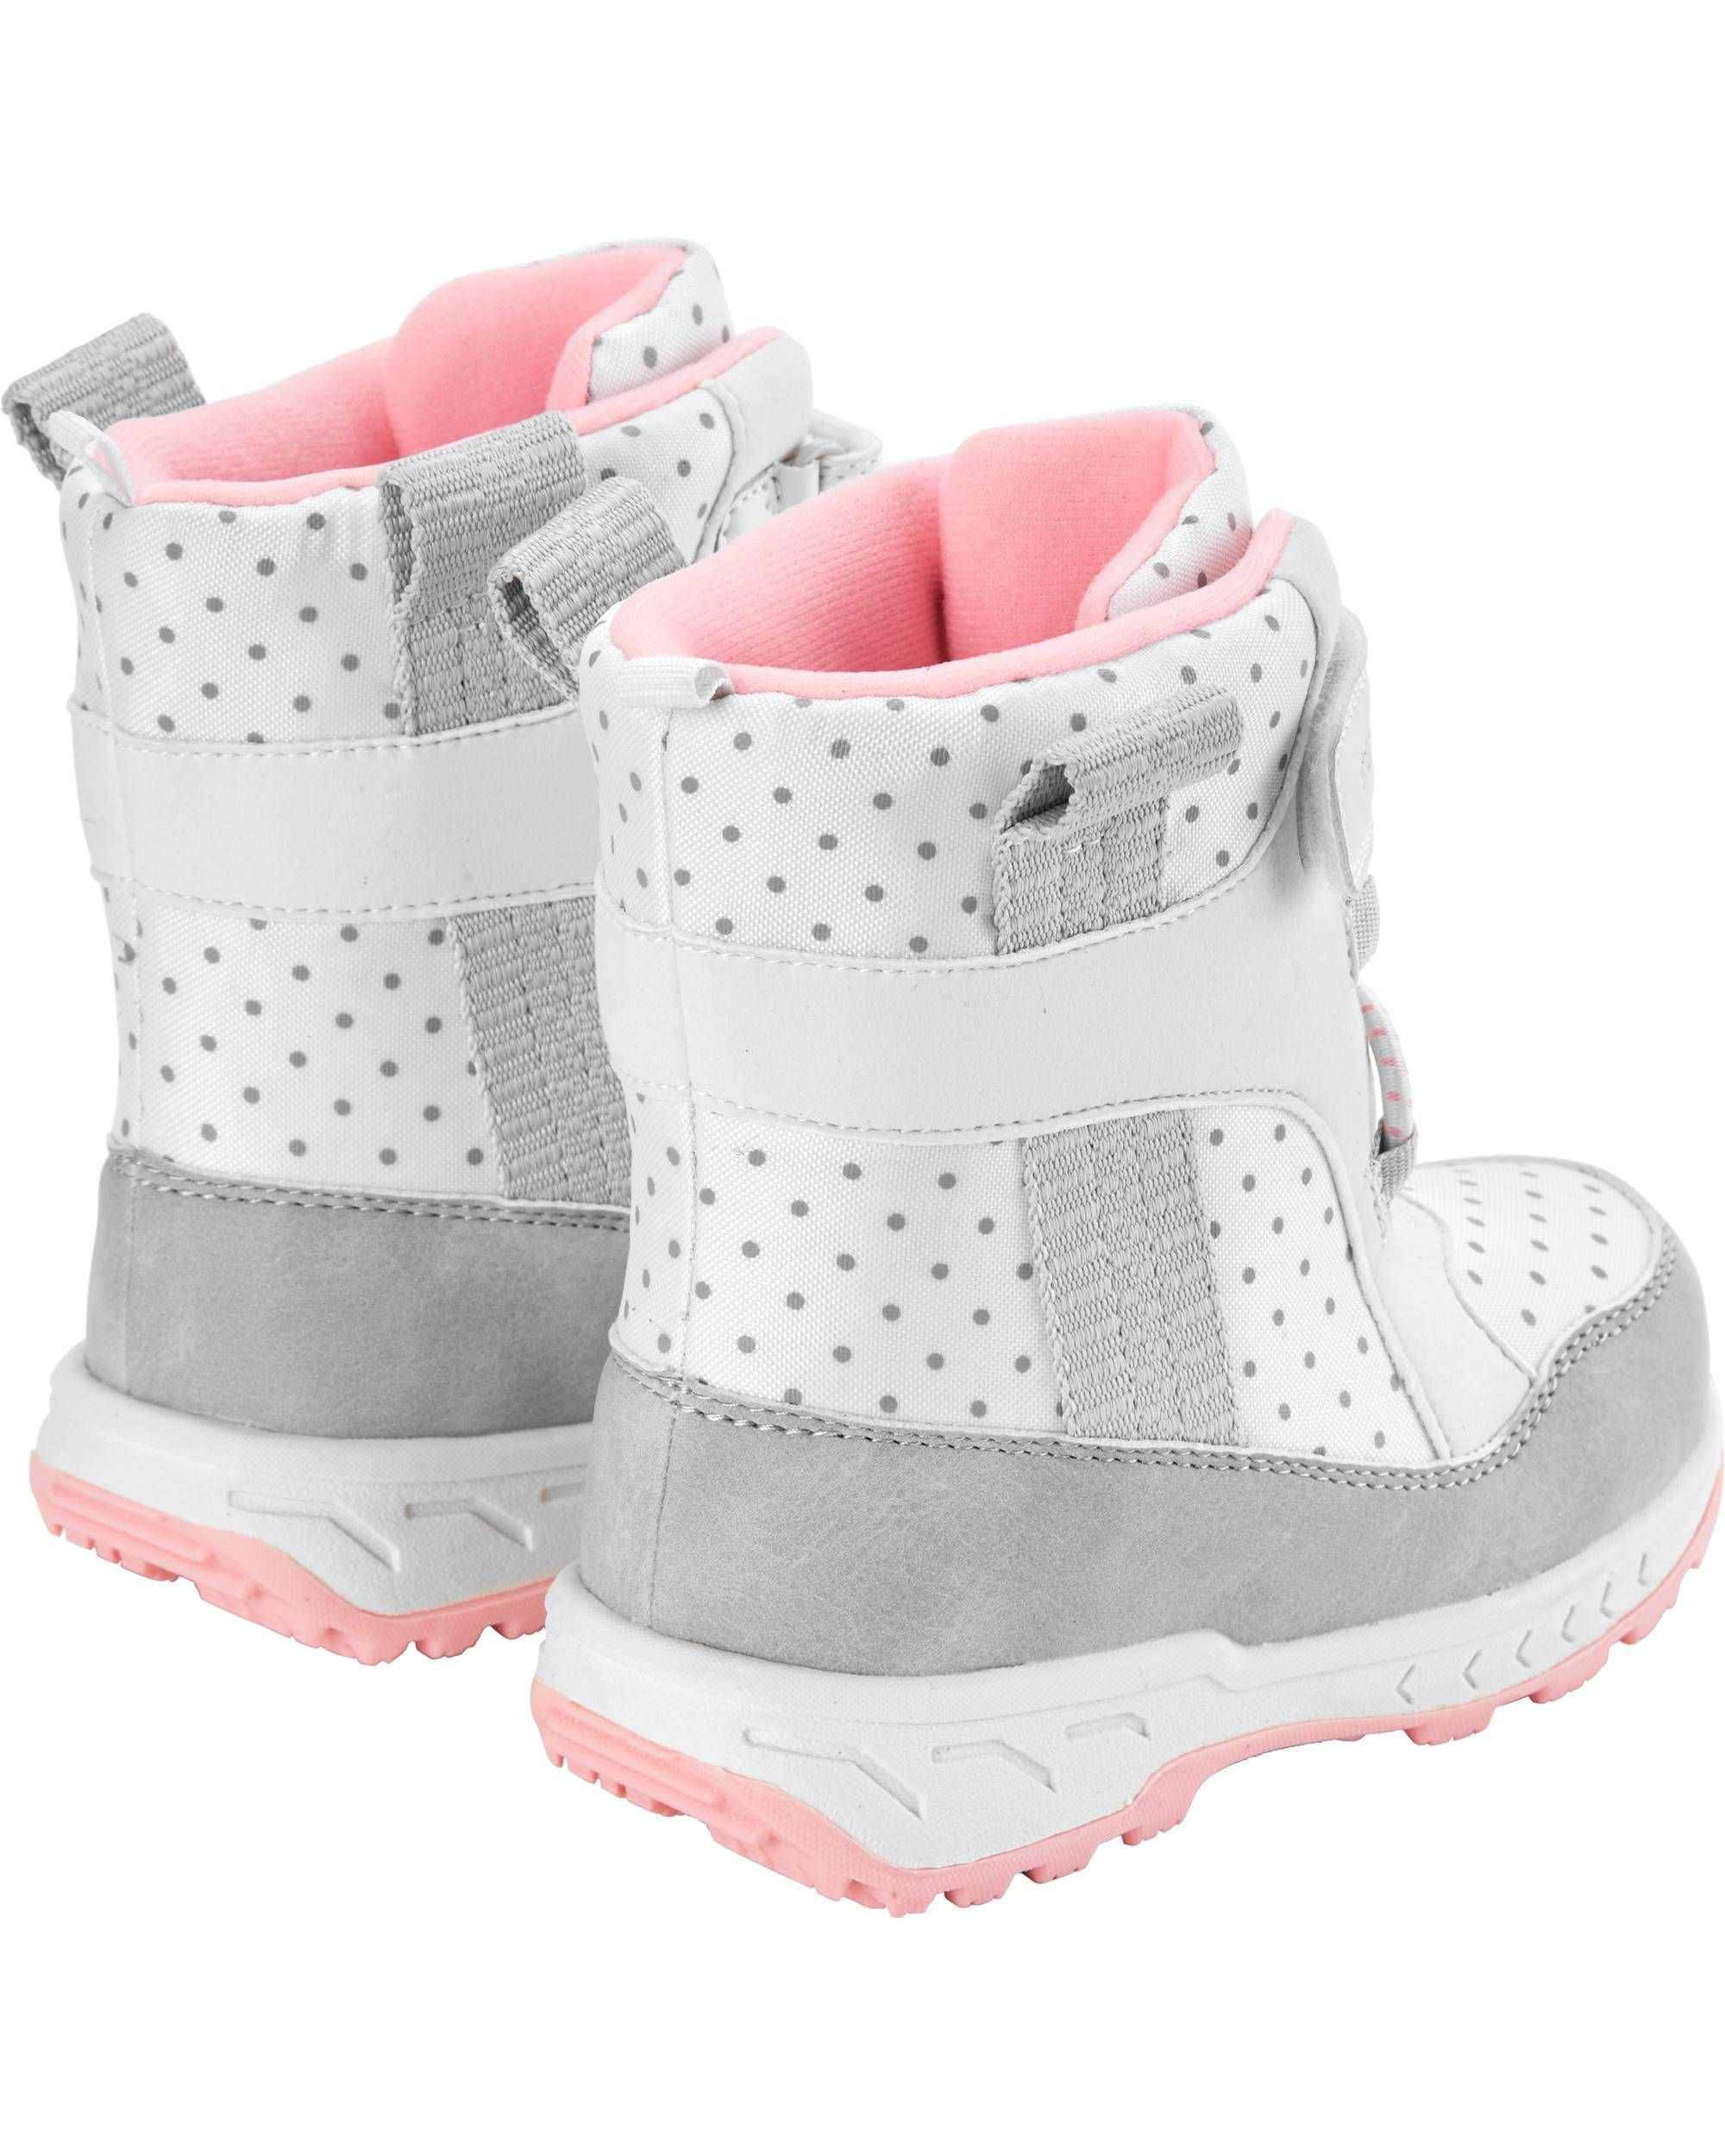 carters baby snow boots